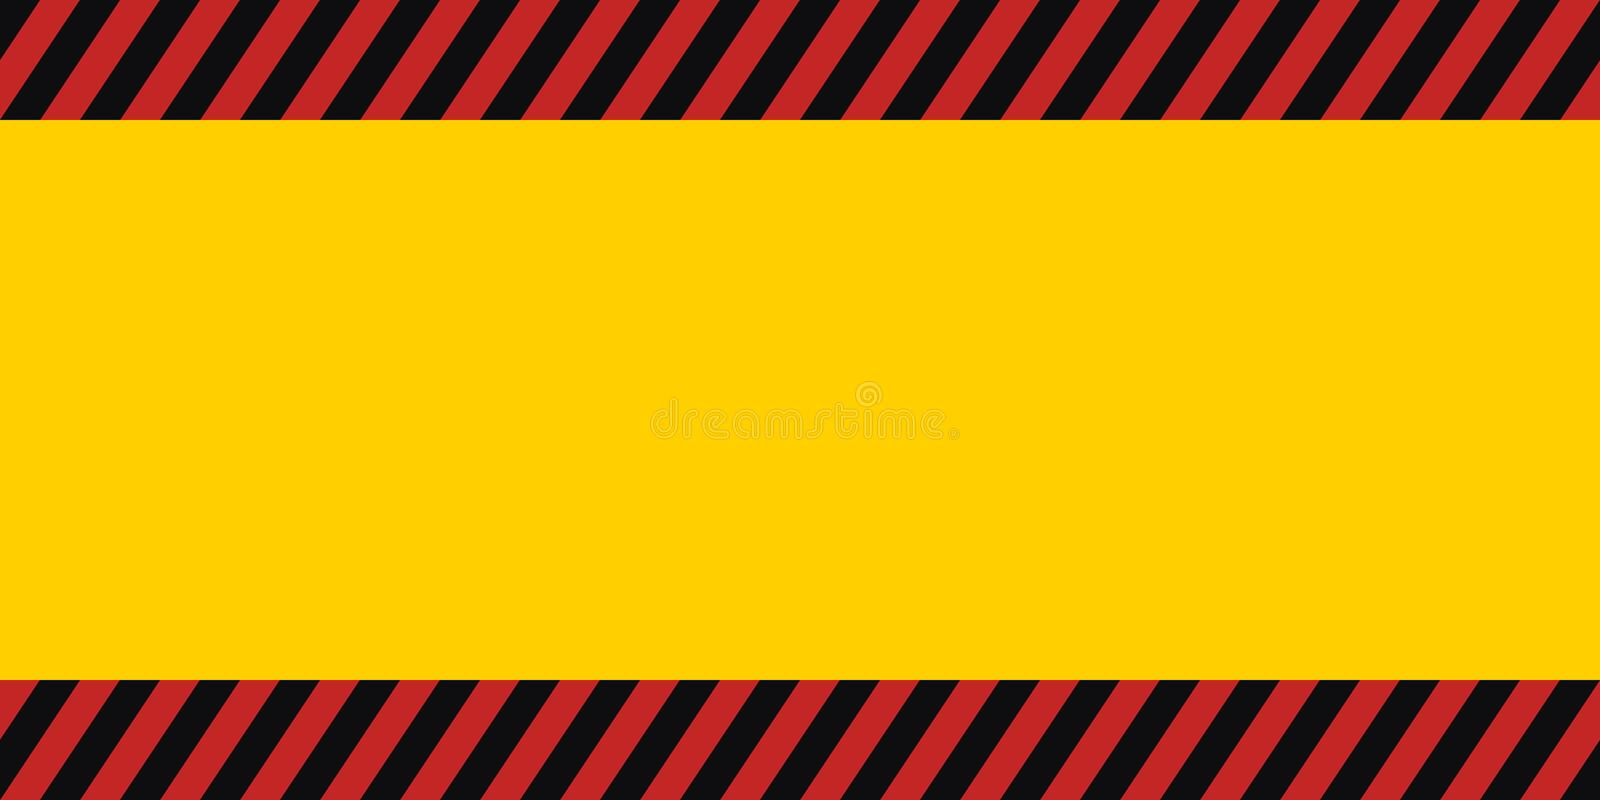 Cadre d'avertissement horizontal de bannière, rayures noires et diagonales jaunes rouges, vecteur de danger de papier peint de co illustration stock